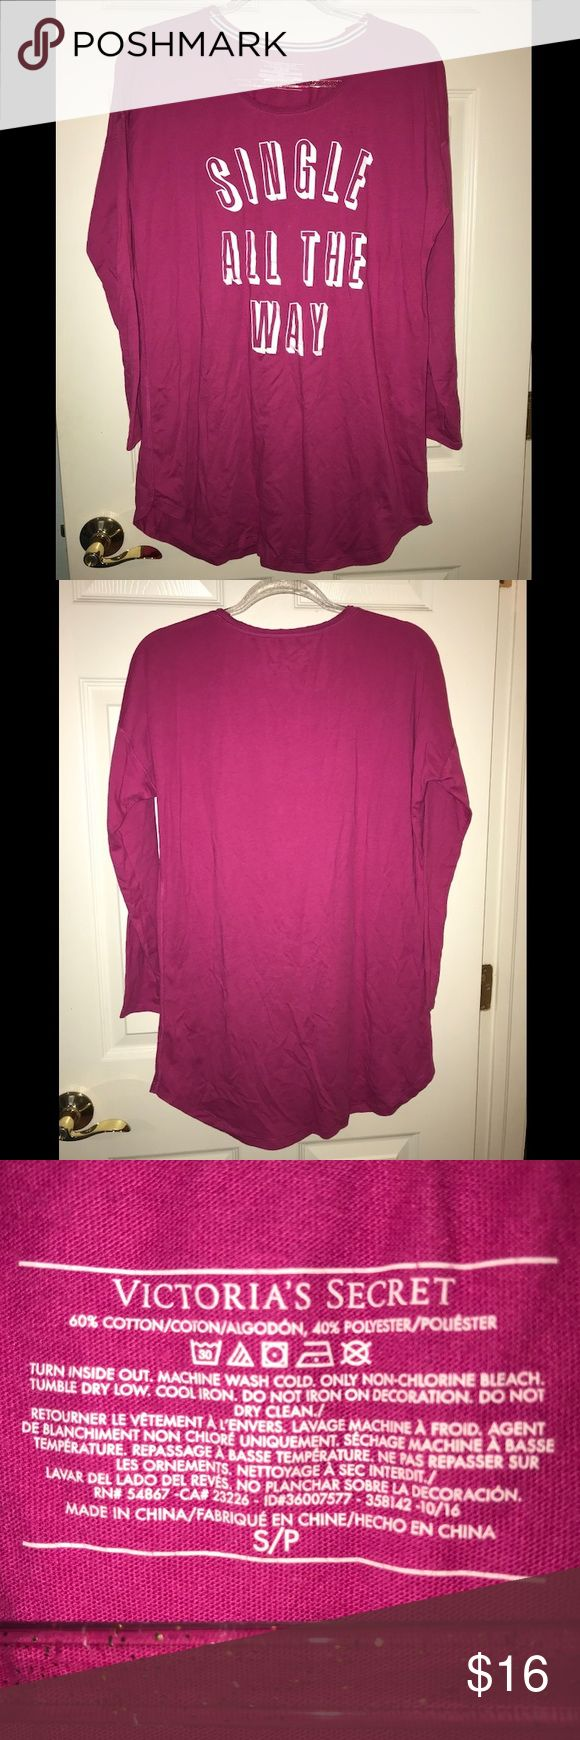 """Victoria/'s Secret Long Sleeve Pajama T-Shirt Top /""""Single All The Way/"""" Pink NWT"""